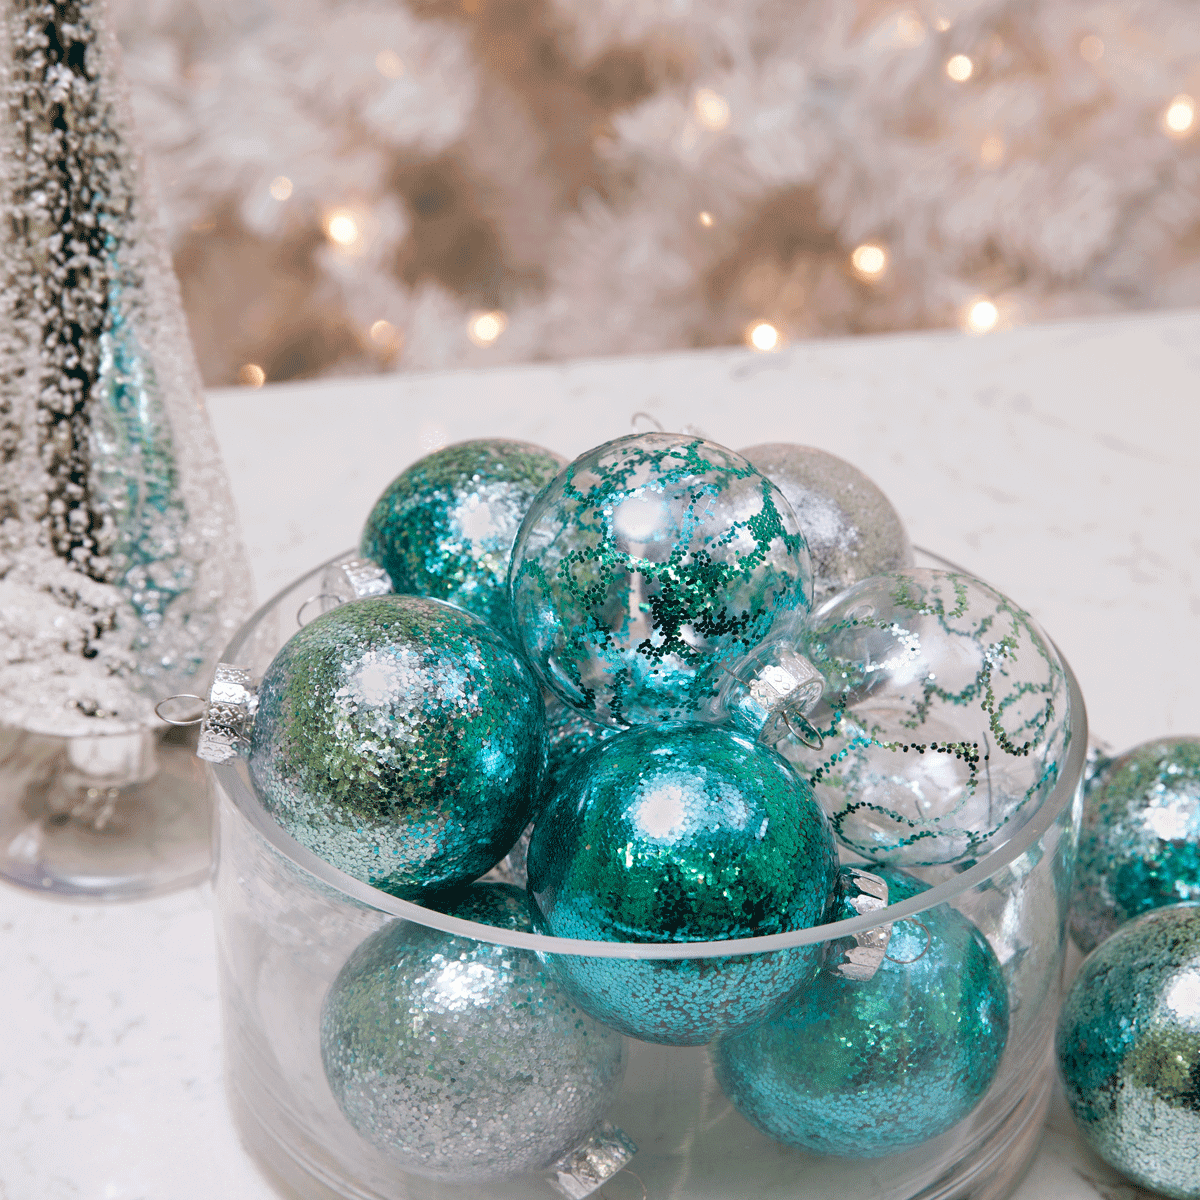 10 Easy Ornament Ideas for the Holidays Step 7